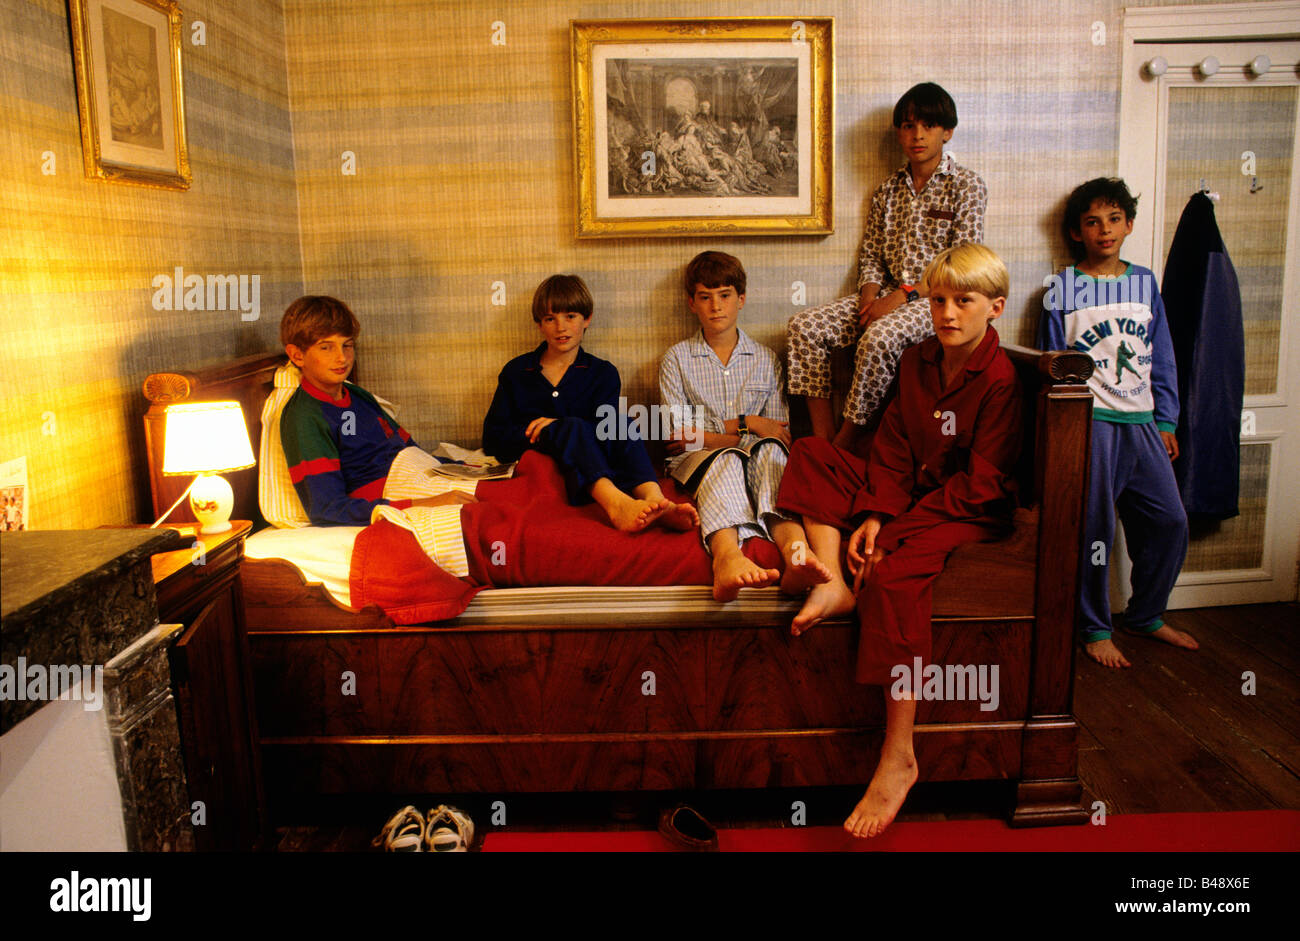 Boys wearing pyjamas in their dorm as they get ready for bed at the end of the day - Stock Image